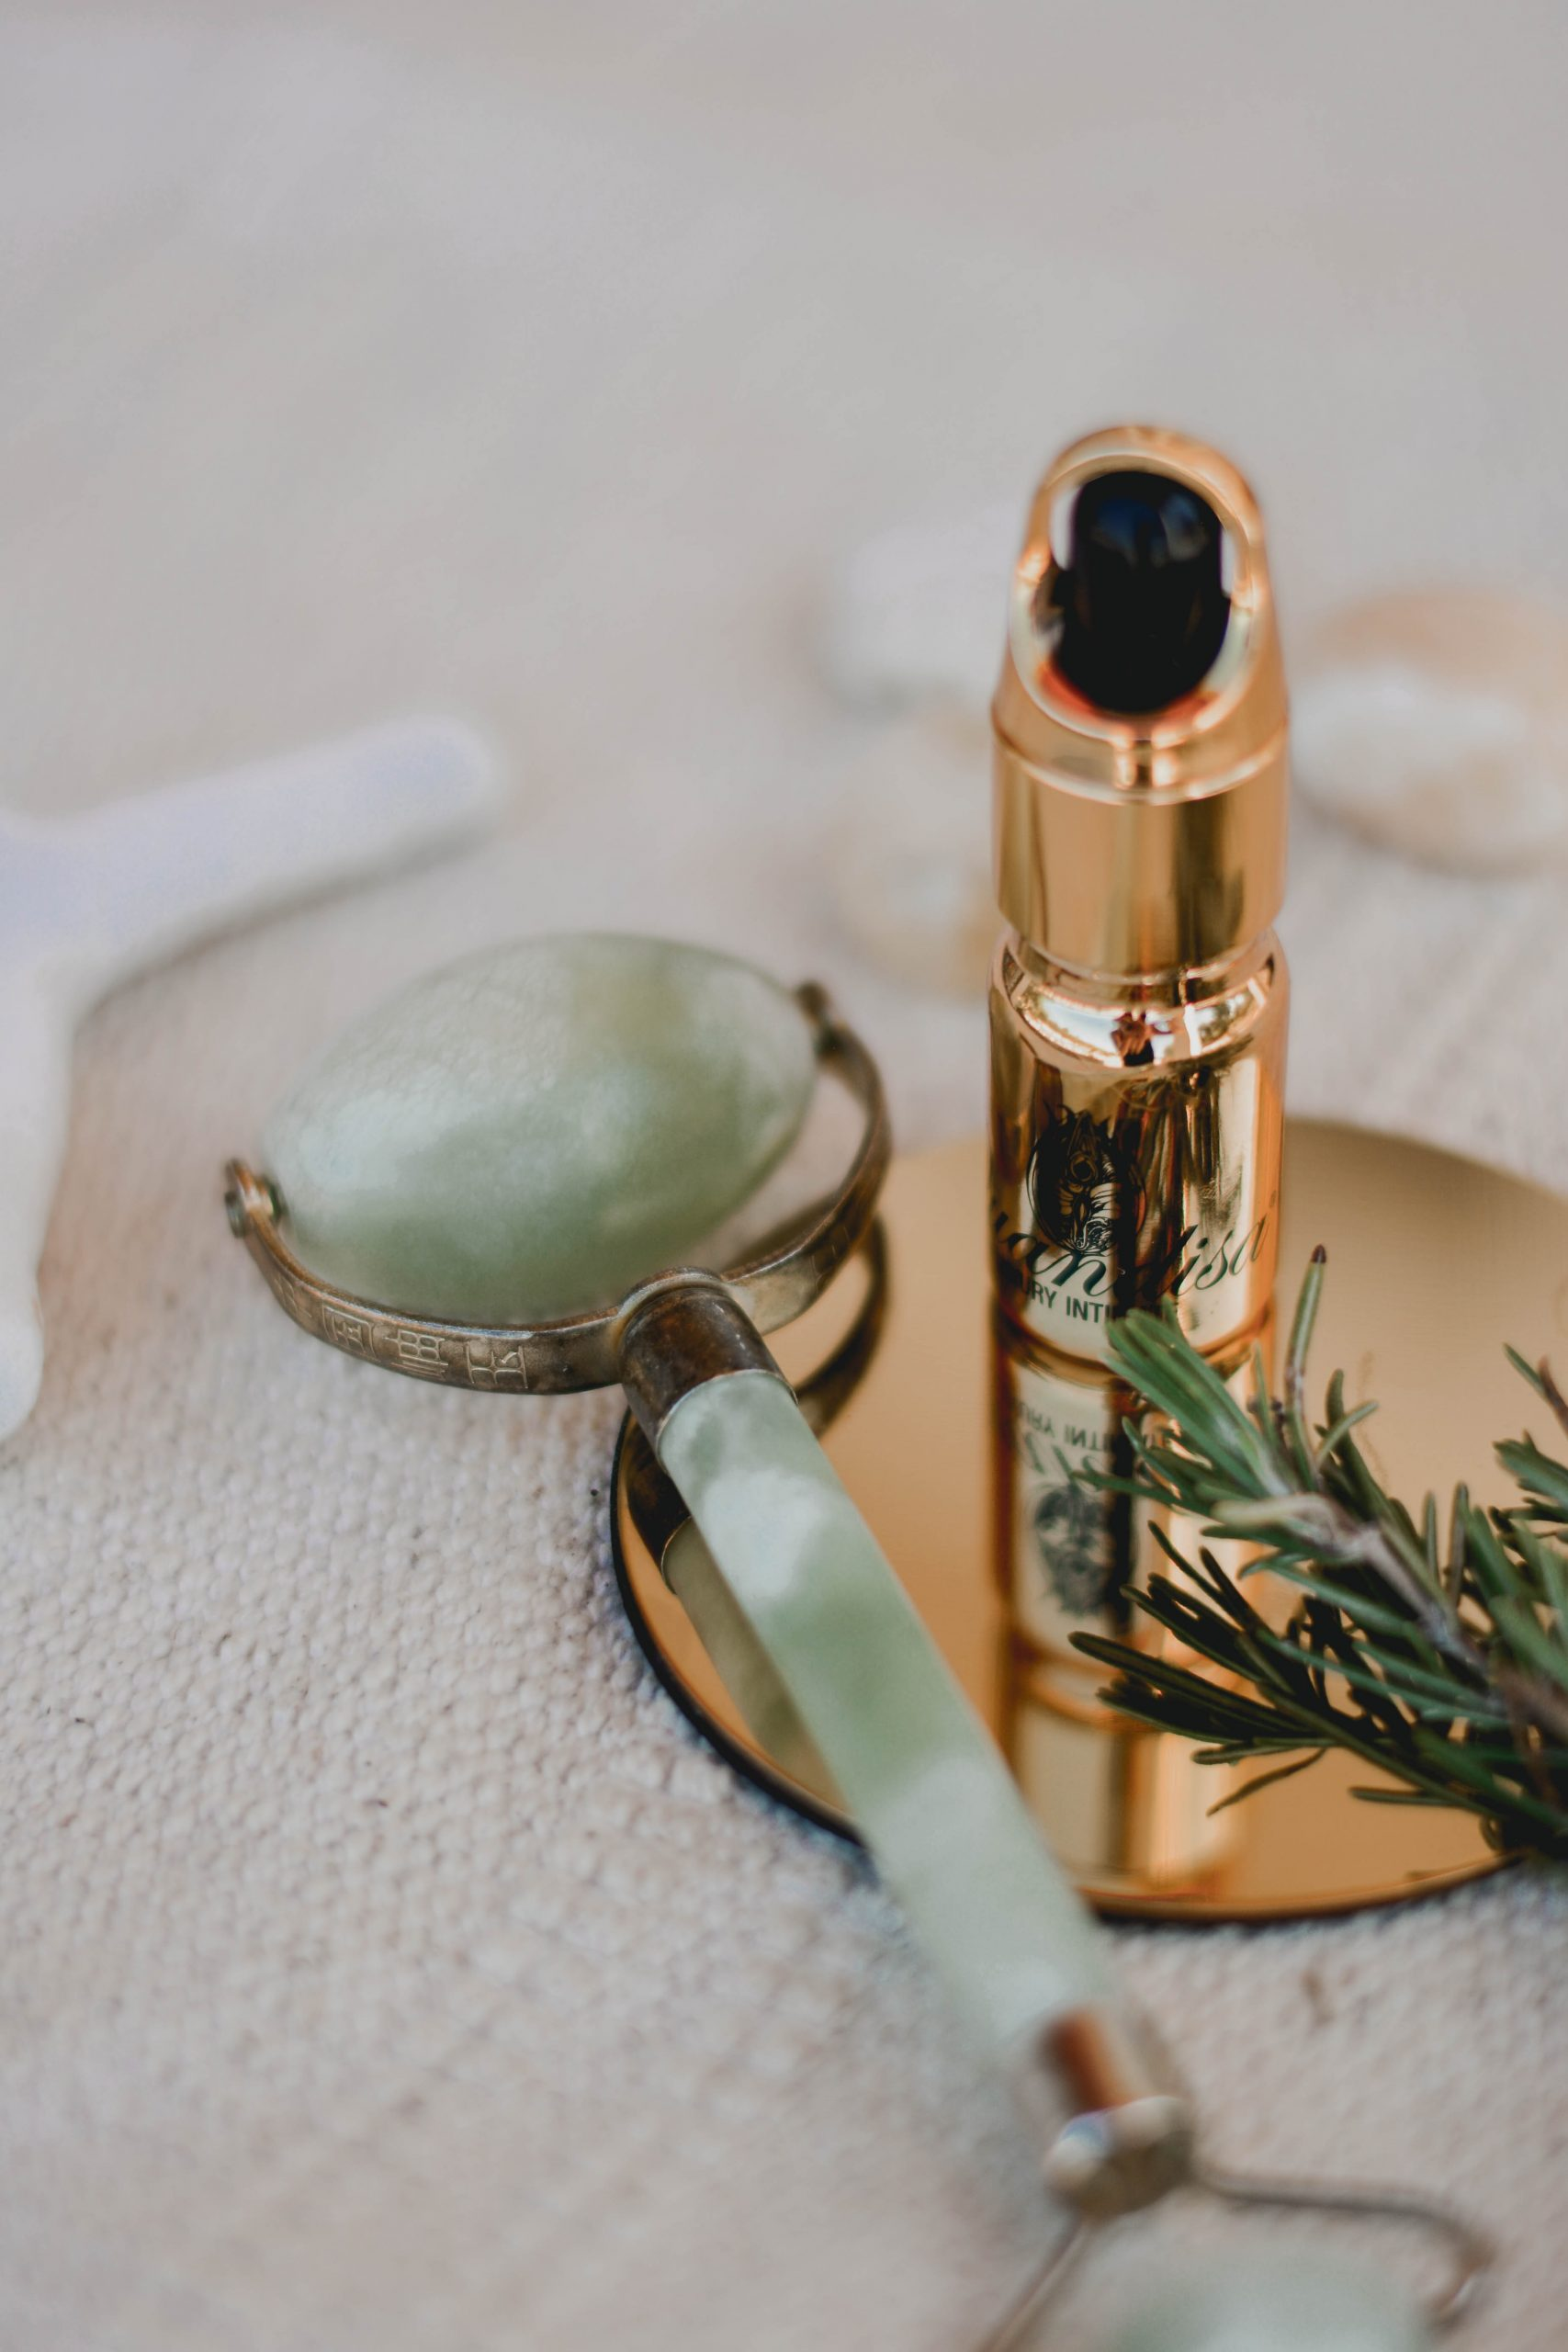 Facial Oils To Hydrate your Complexion